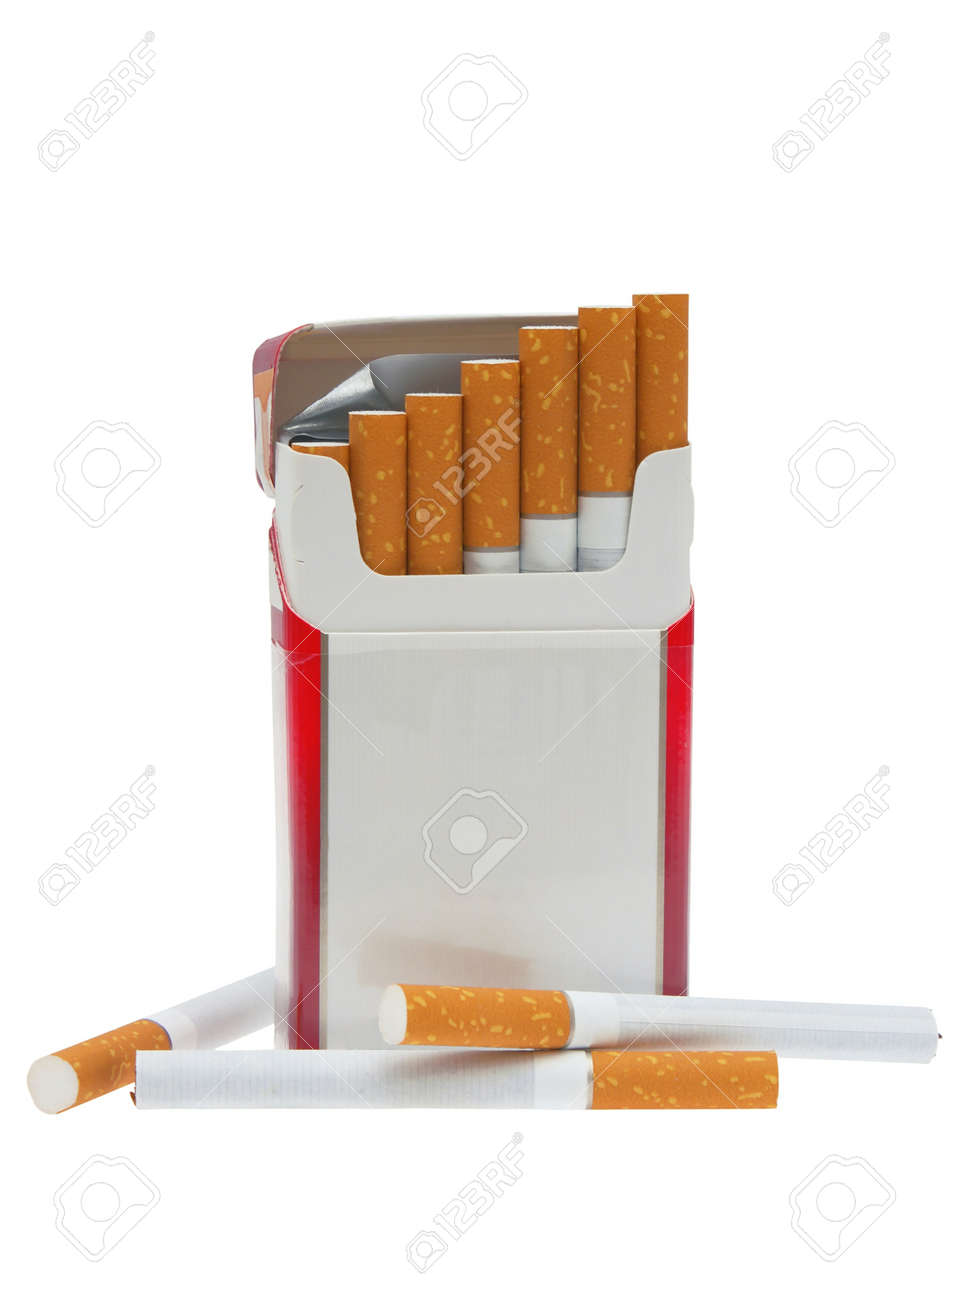 Open pack of cigarettes and a cigarette on a white background. Stock Photo - 8480784